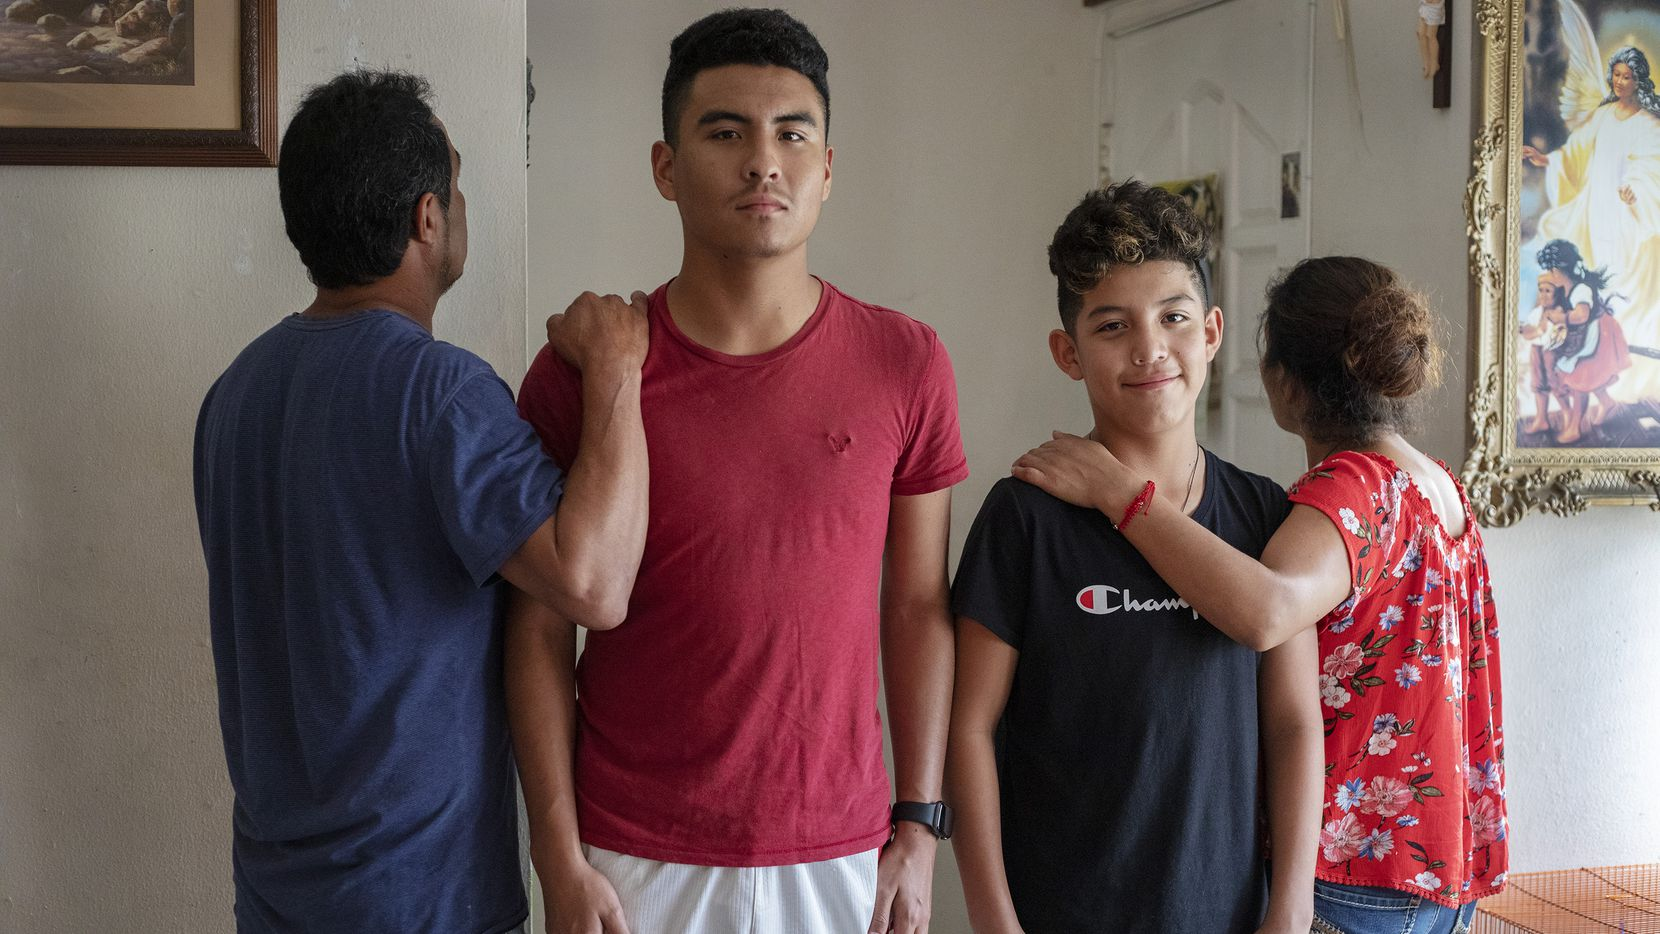 Marco and Max Jr. Trejo (center left-right) with their parents Max and Jacobo Trejo at their home in Irving on Aug. 30.  ICE knocked on the door to the family home but they didn't answer.  Soon after Max Trejo was detained by ICE in the neighborhood and later released. Max Jr. suffered symptoms of stress according to family's doctor, and Marco cried at night during his father's detention. The family is awaiting a court hearing to determine if Max Sr. will be deported.